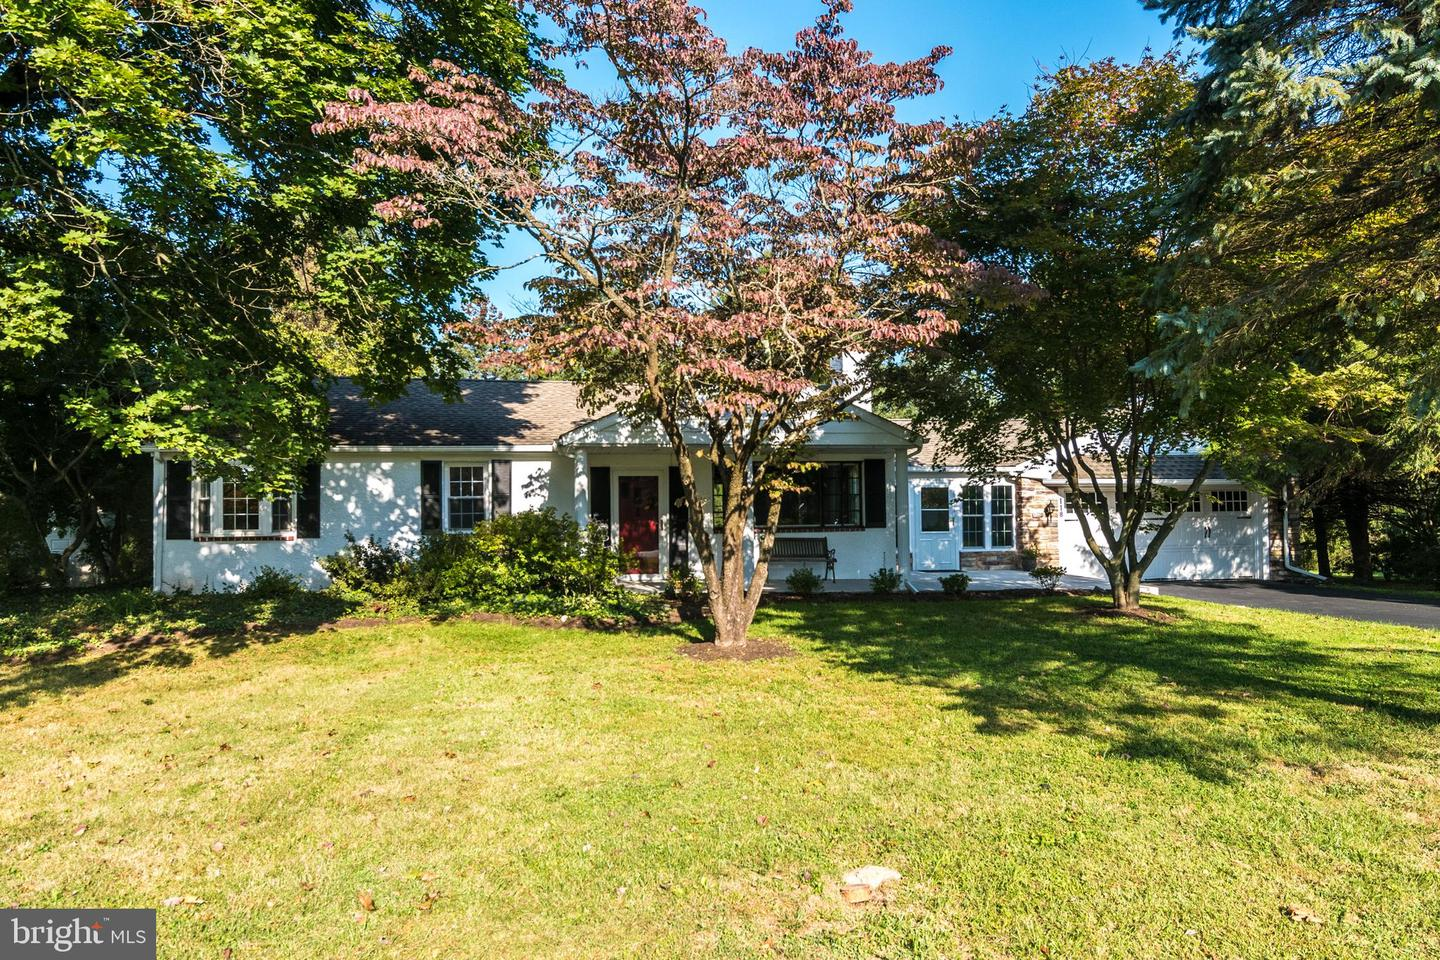 Property for Sale at 118 ROSSITER Avenue Phoenixville, Pennsylvania 19460 United States